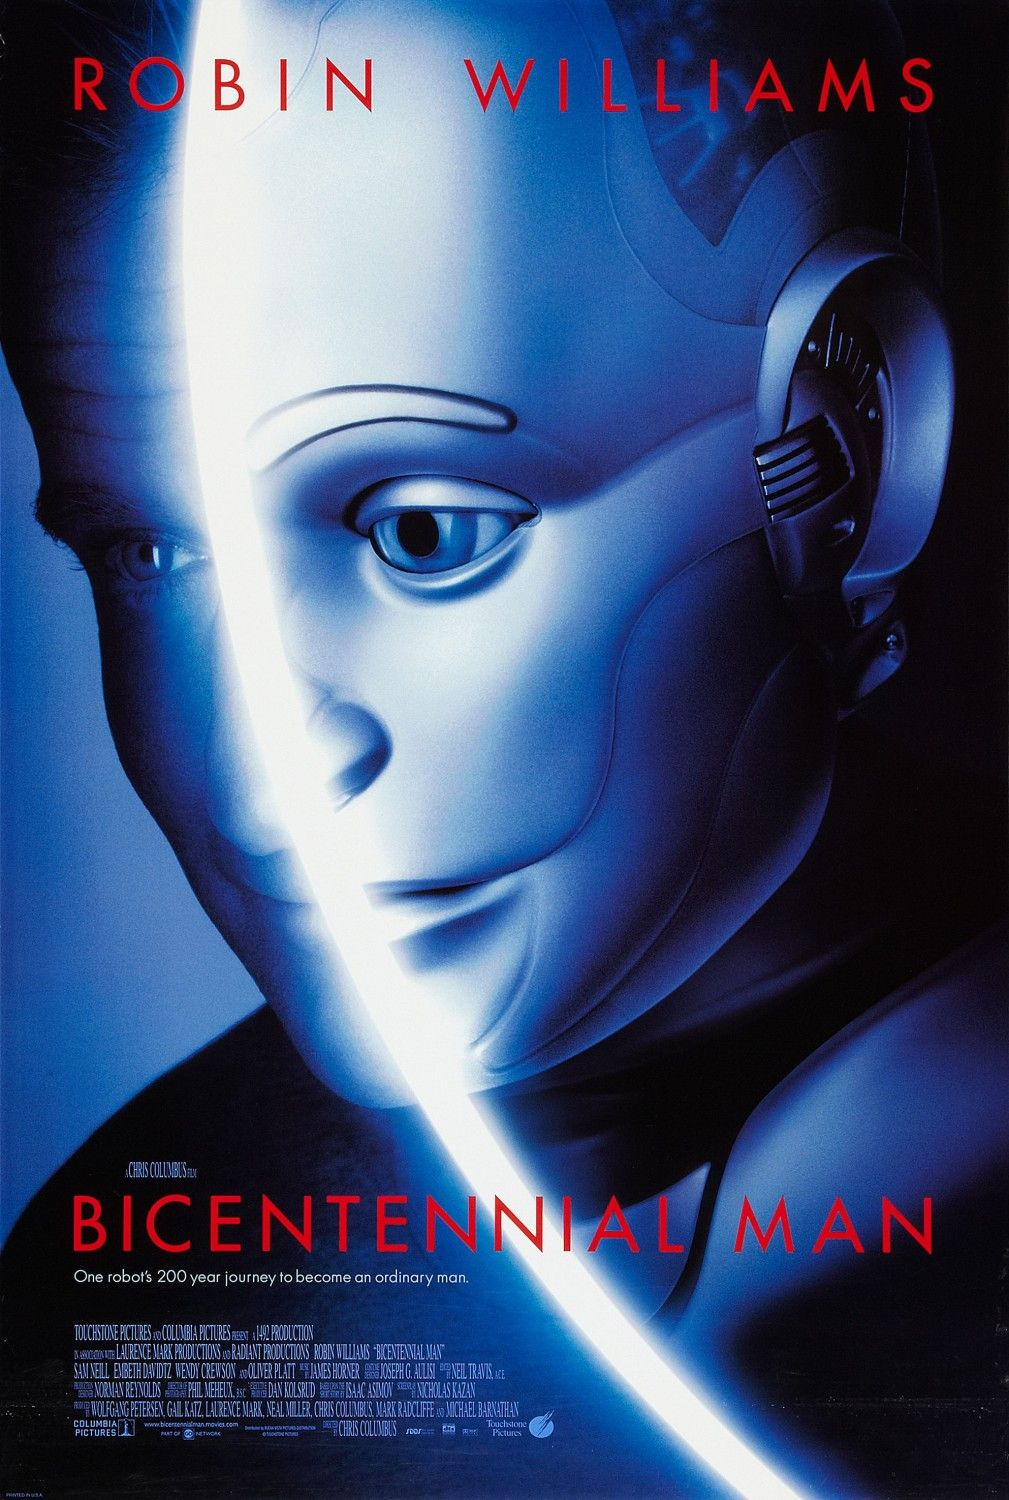 Bicentennial Man Extra Large Movie Poster Image Internet Movie Poster Awards Gallery Robin Williams Movies Bicentennial Man Robin Williams